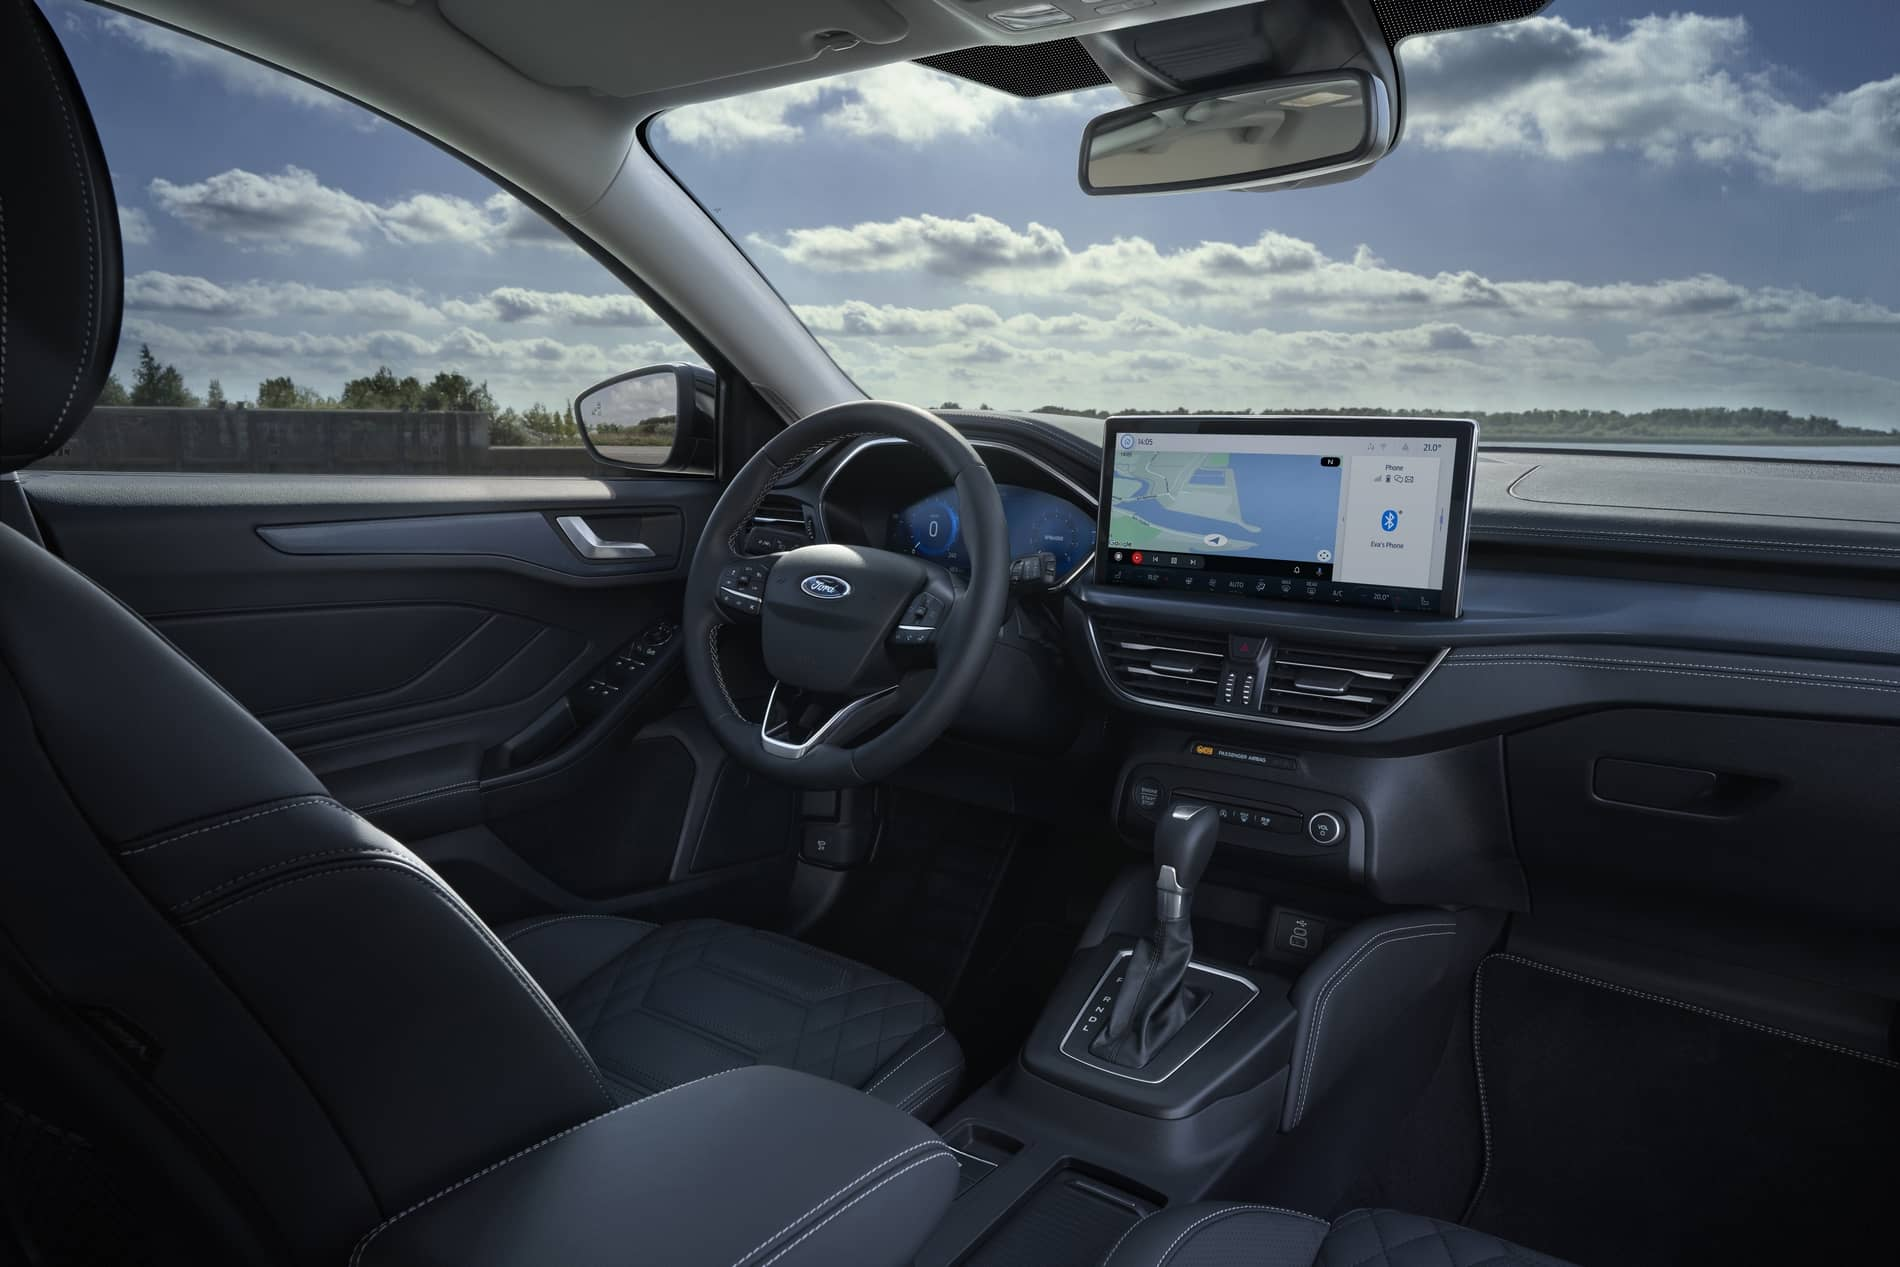 Ford Focus Redefined with Upgraded Connectivity, Energising Elec